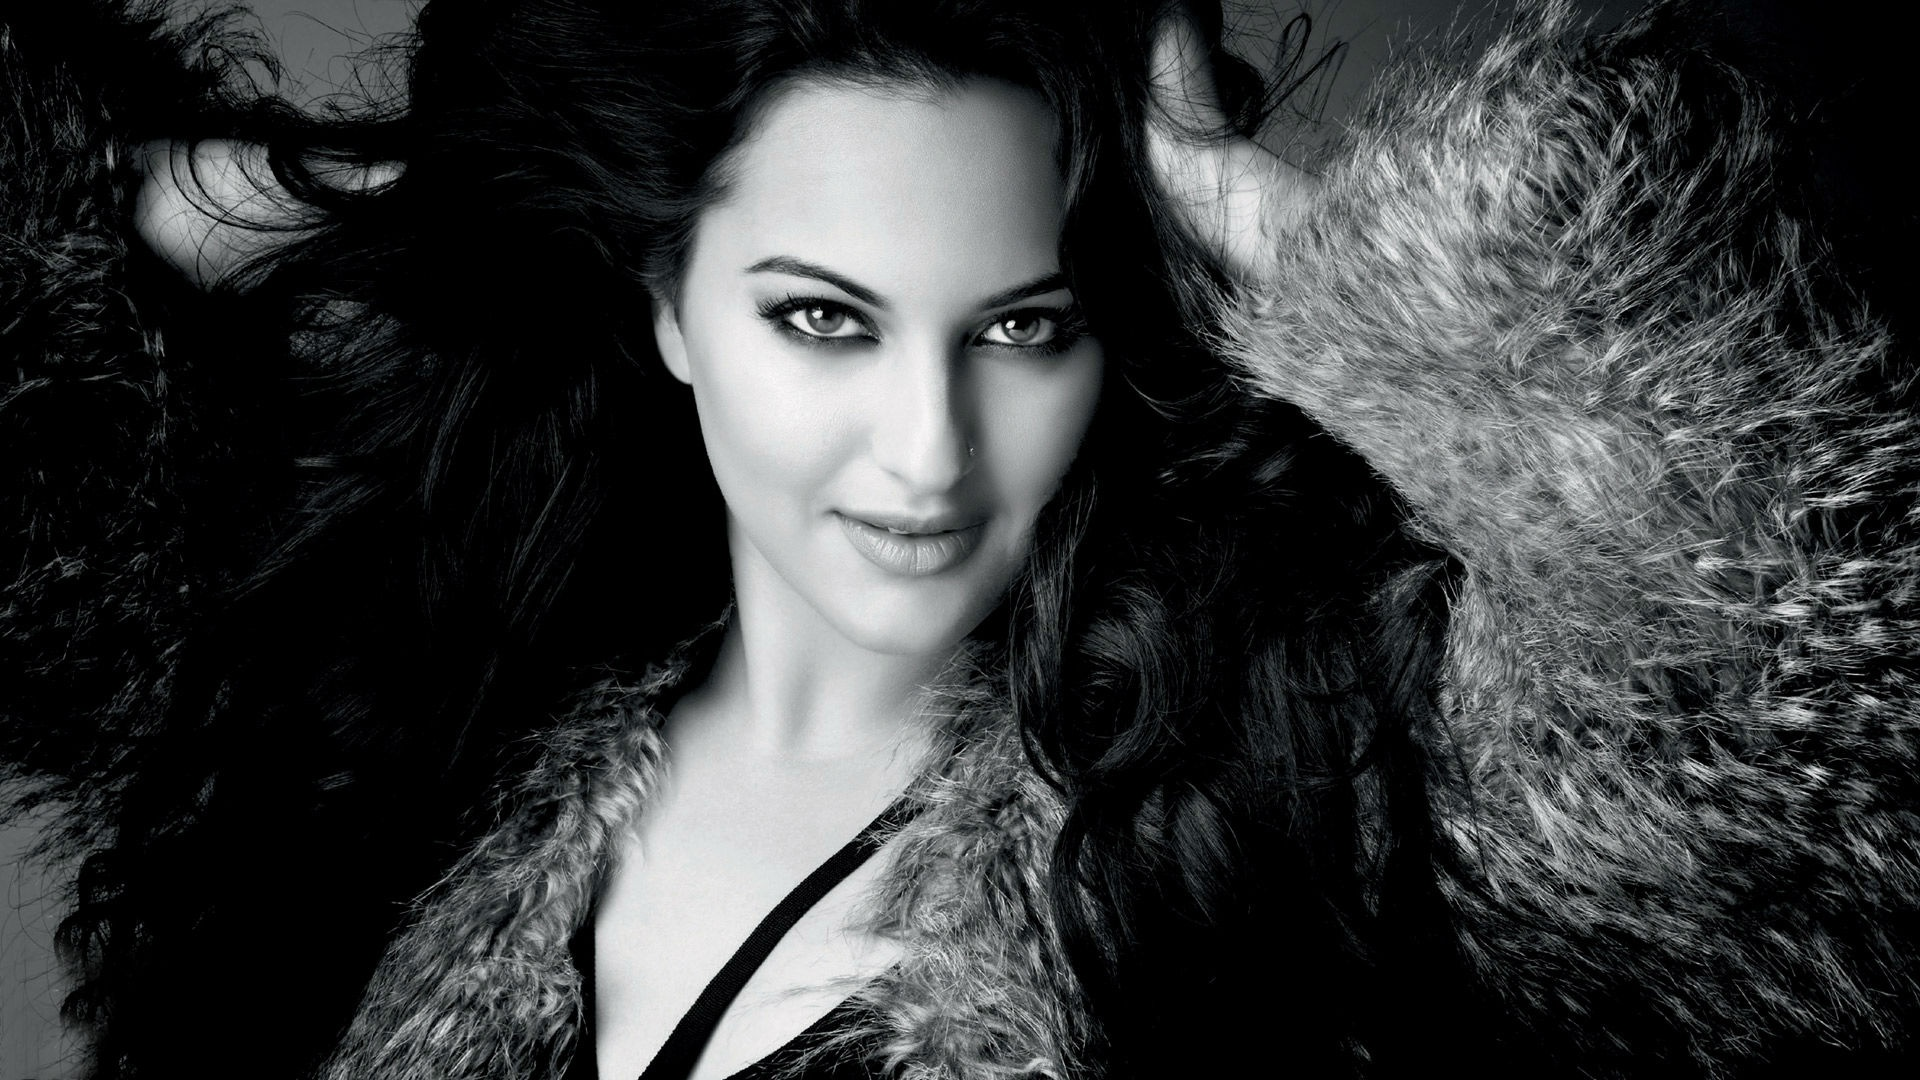 indian-actress-sonakshi-sinha-background-image-new-hd-wallpaper-for-desktop